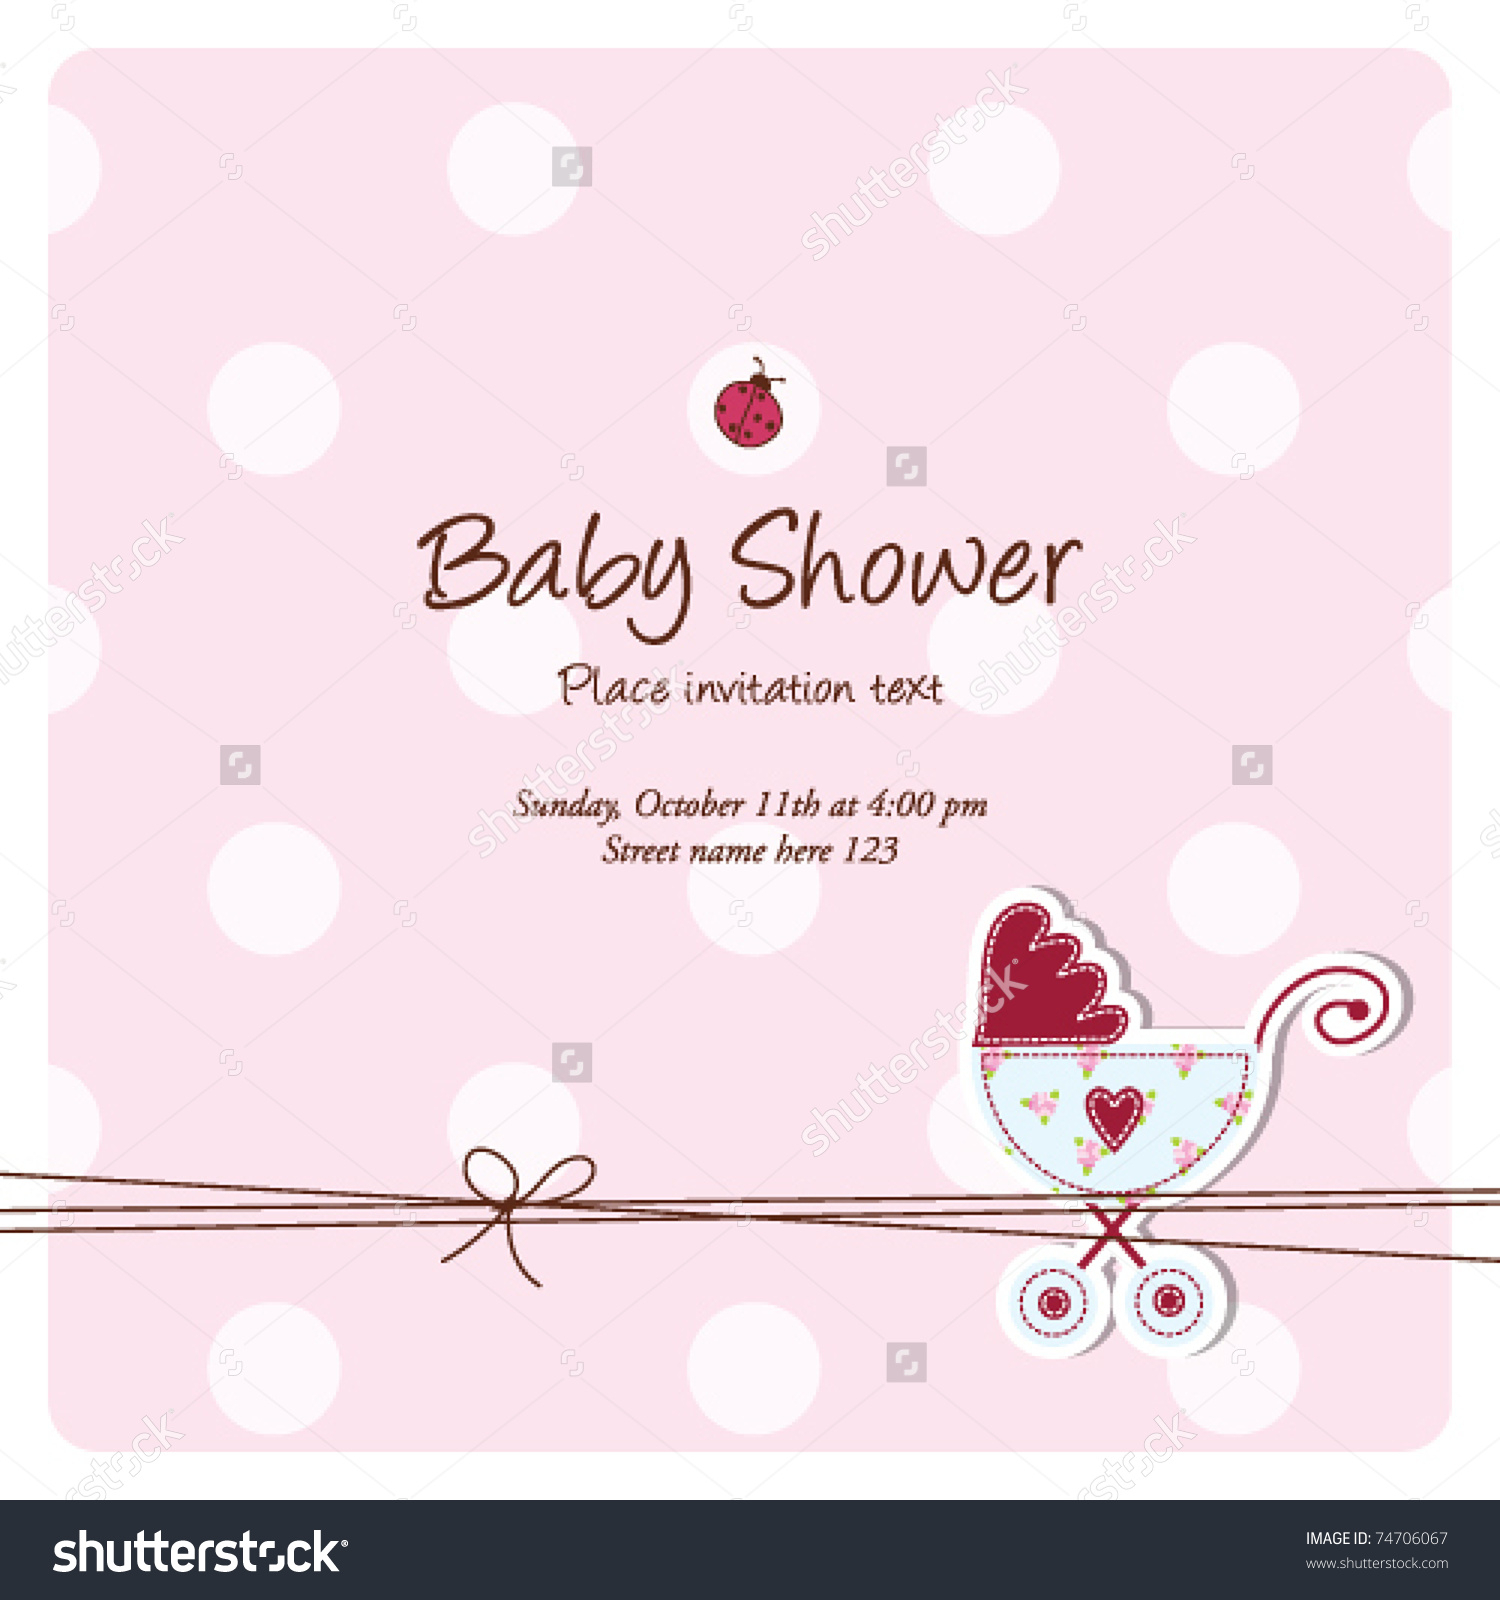 10 Nice Cute Ideas For Baby Shower Invitations card invitation ideas cute babyshower invitation cards unique shower